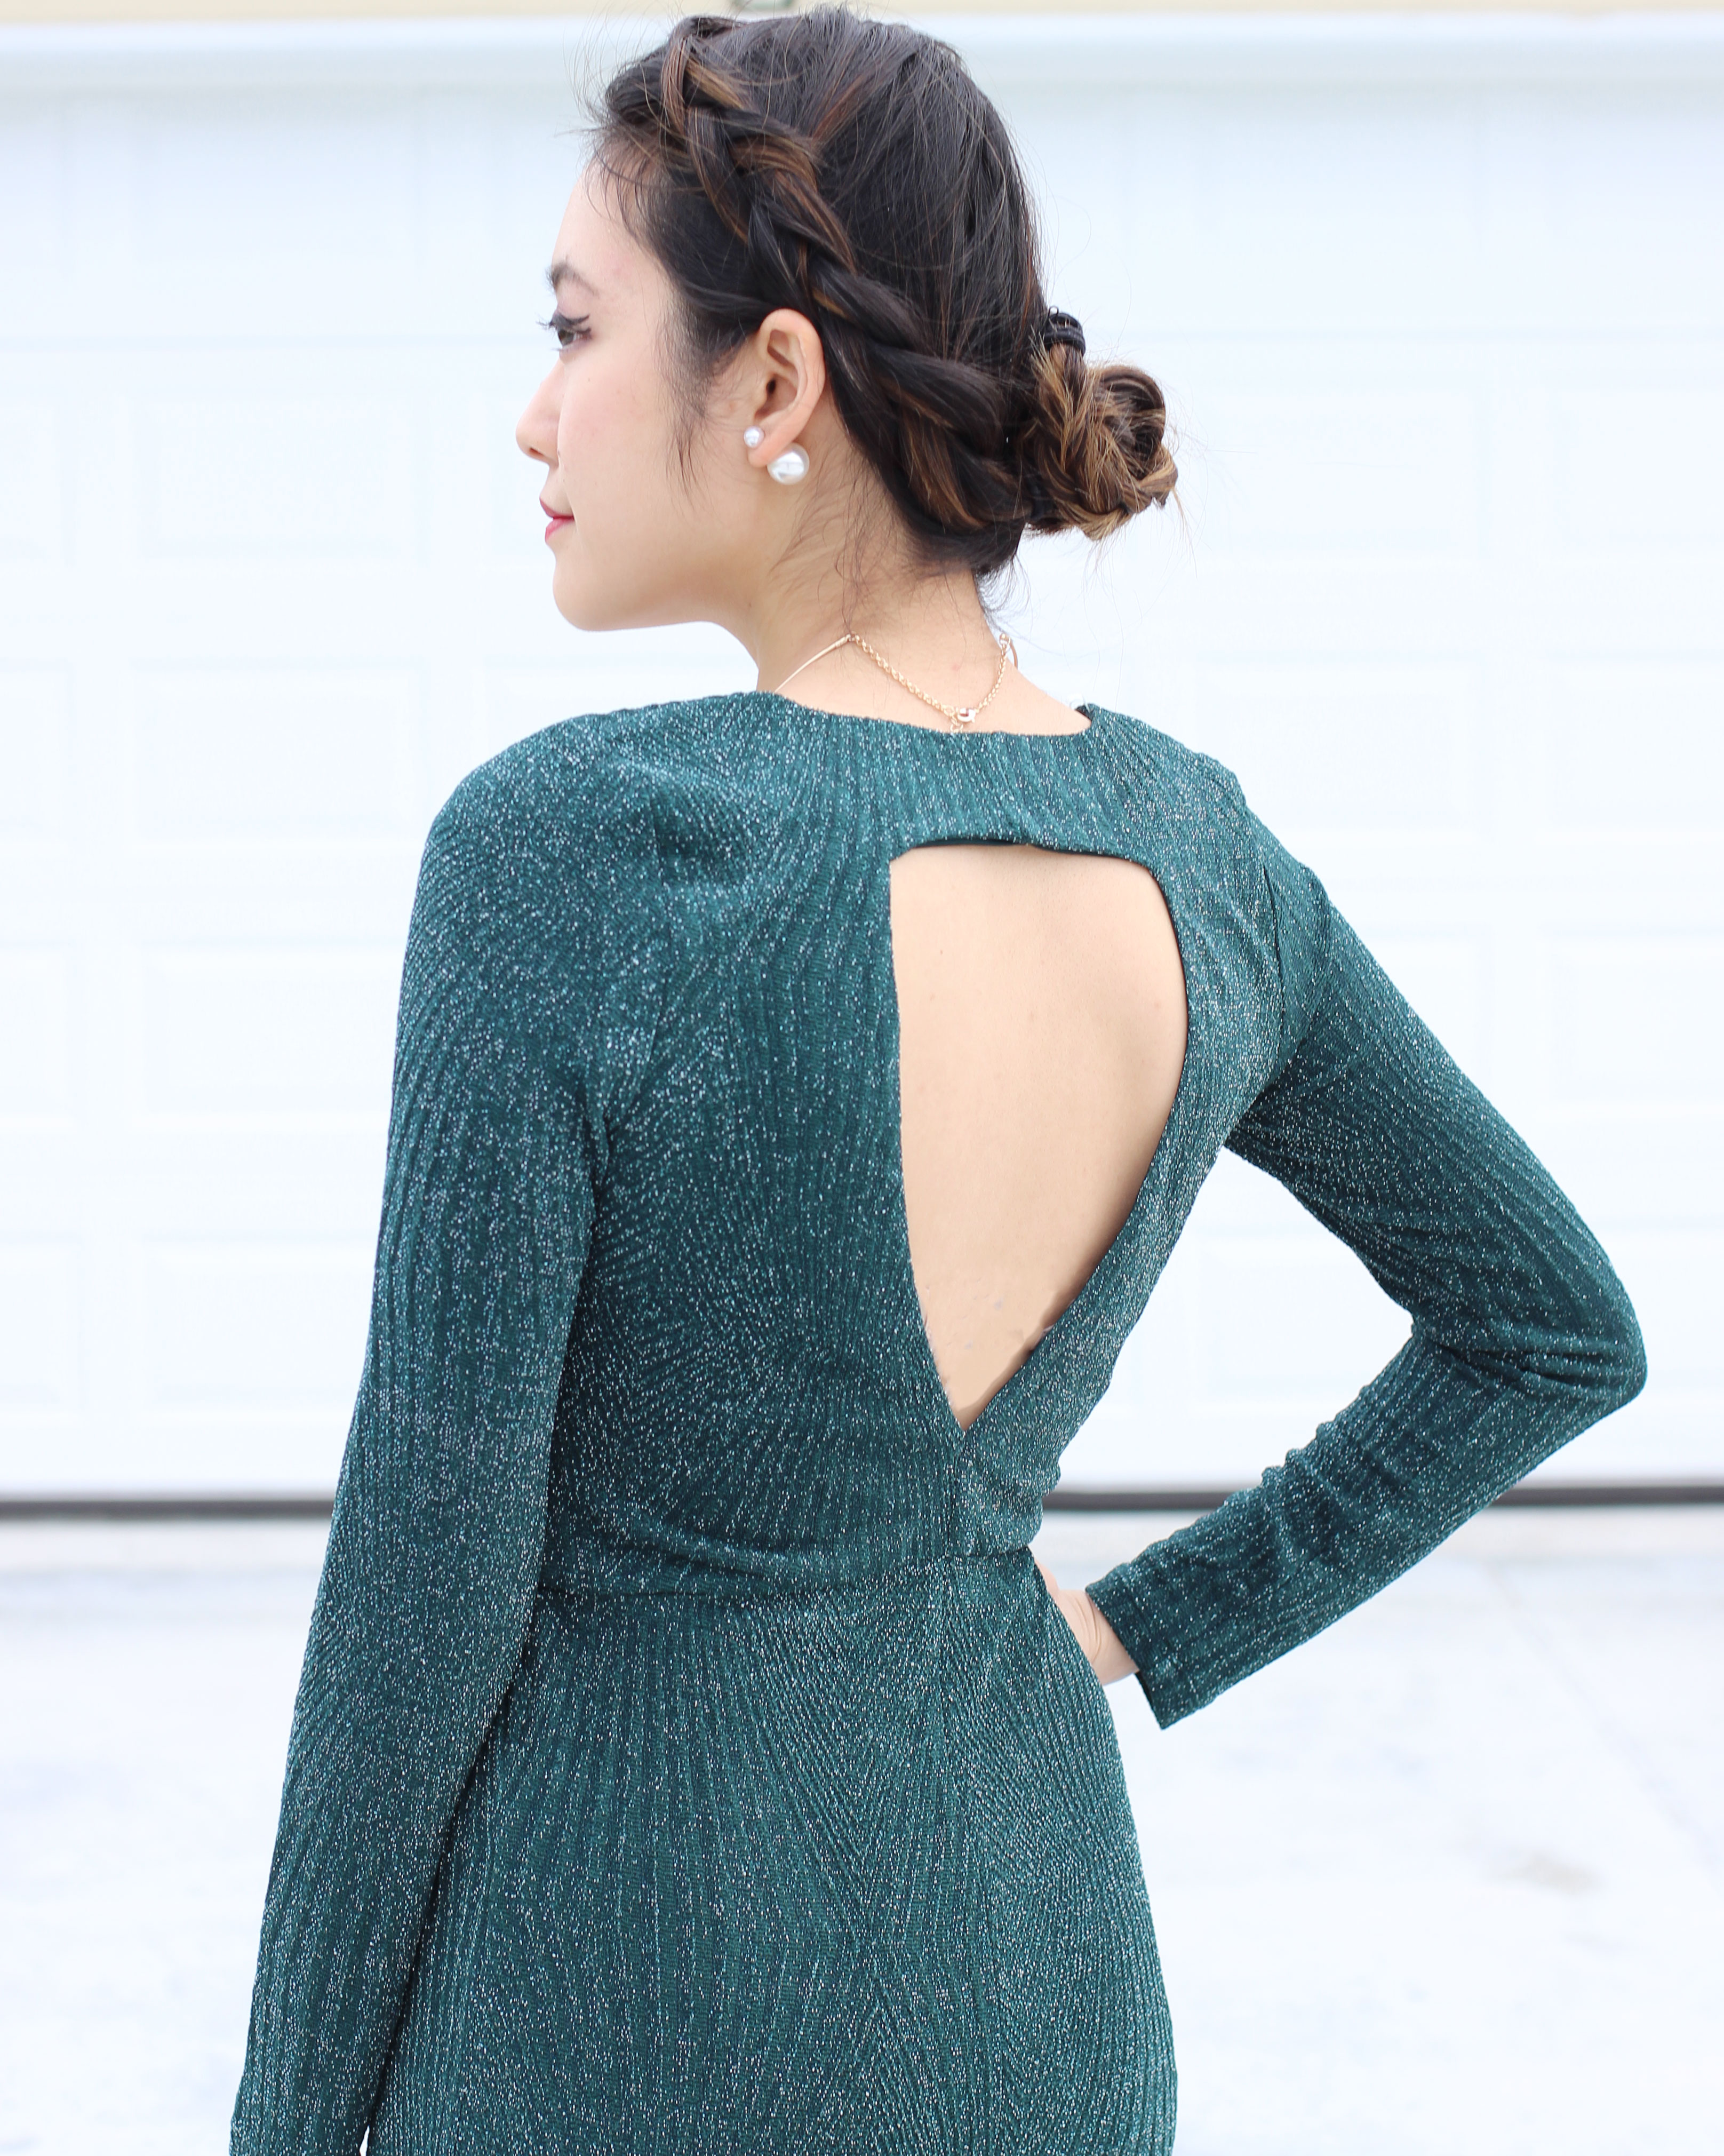 Backless green glittery long sleeve bodyon dress and crown braid bun